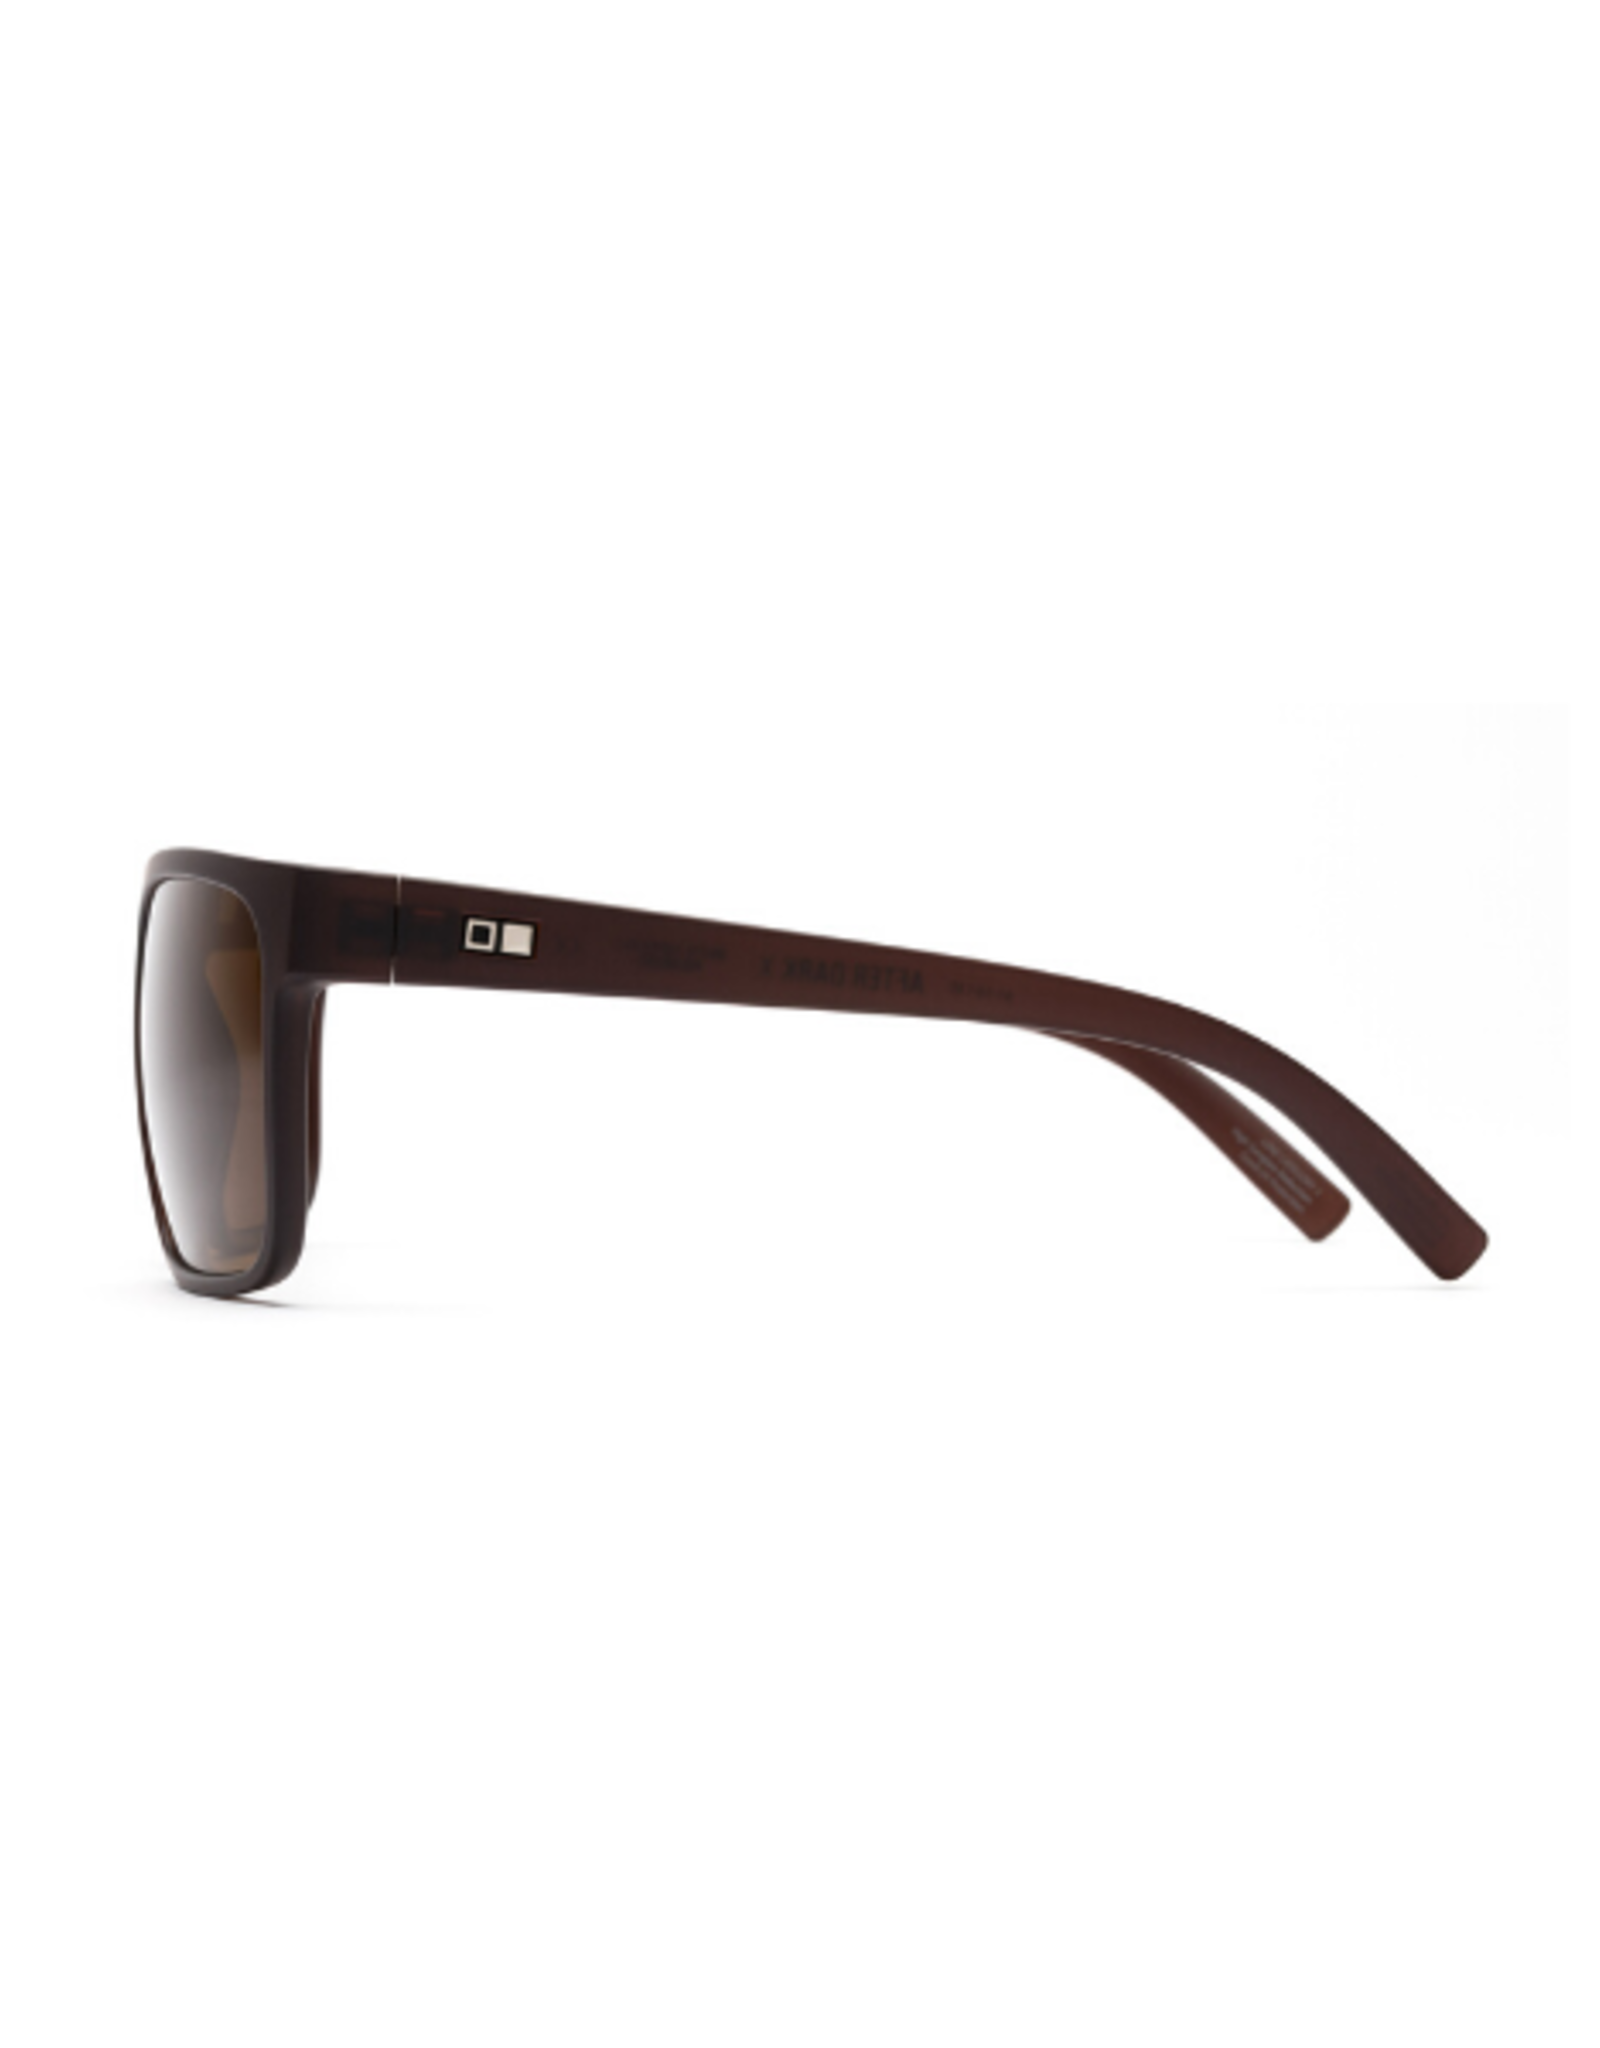 Otis Eyewear 136-2002P After Dark X Matte Espresso/Brown Polar